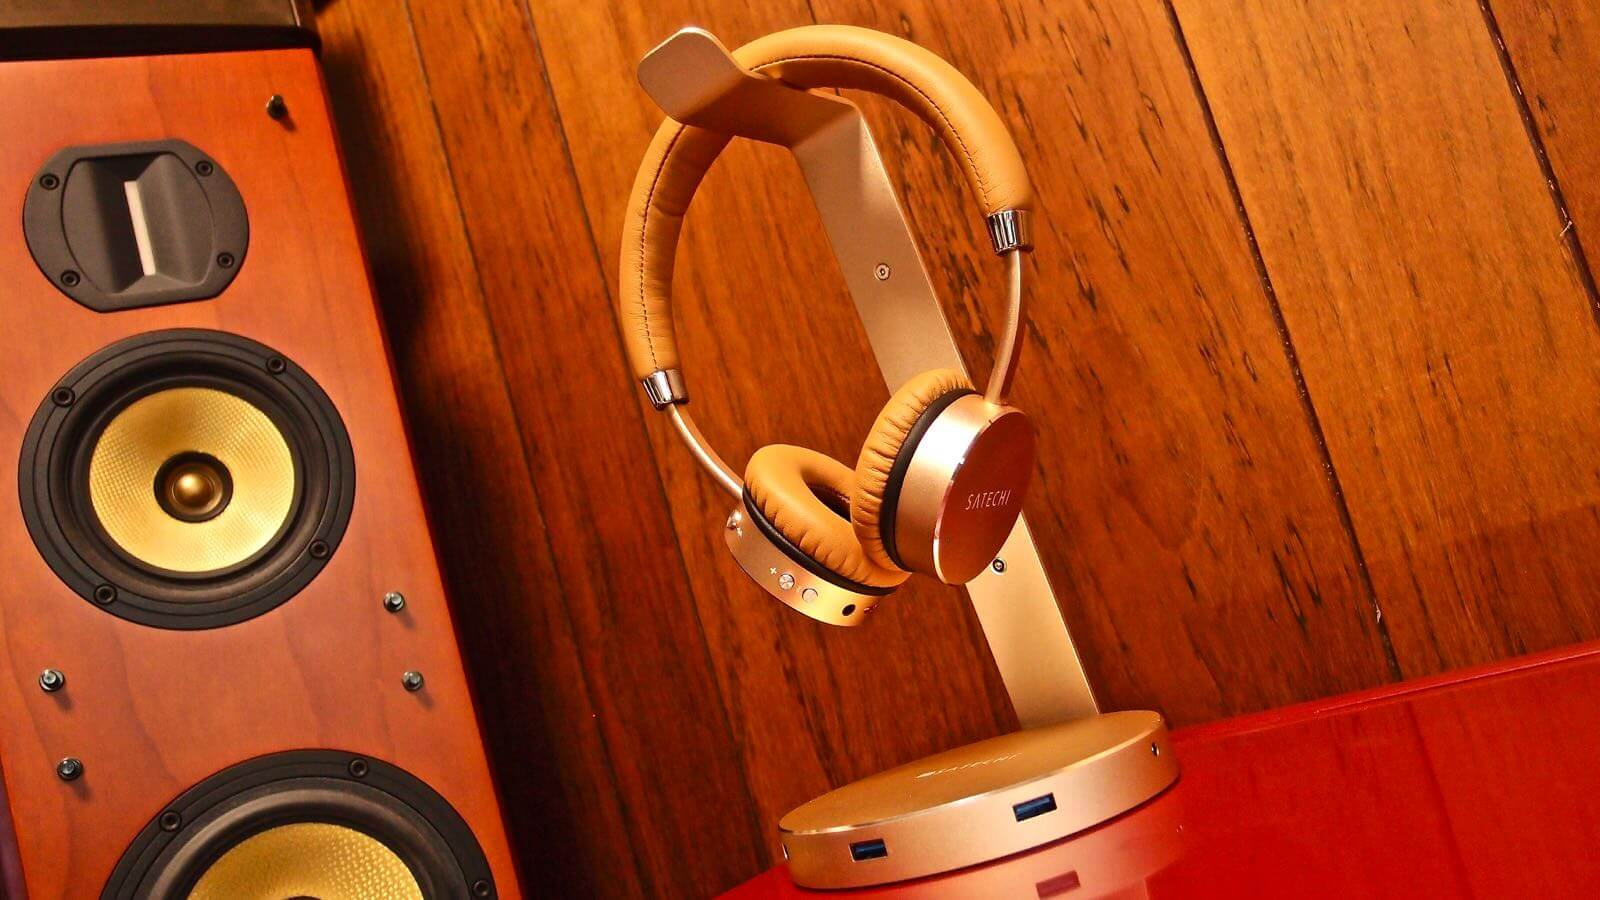 0160 Satechi s Headphone Stand Review 01